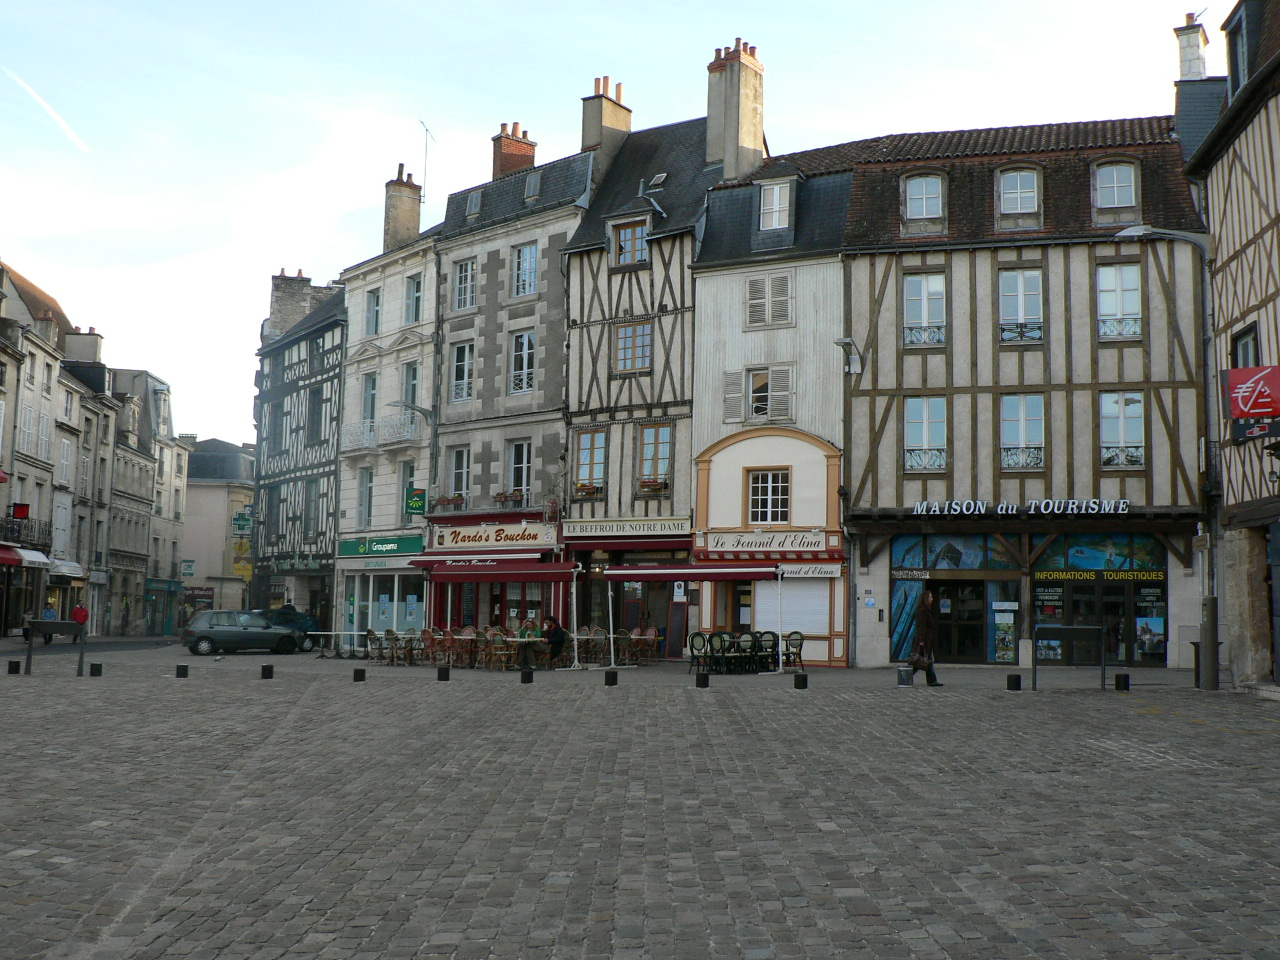 http://upload.wikimedia.org/wikipedia/commons/6/66/PlacedeGaulle_Poitiers.JPG